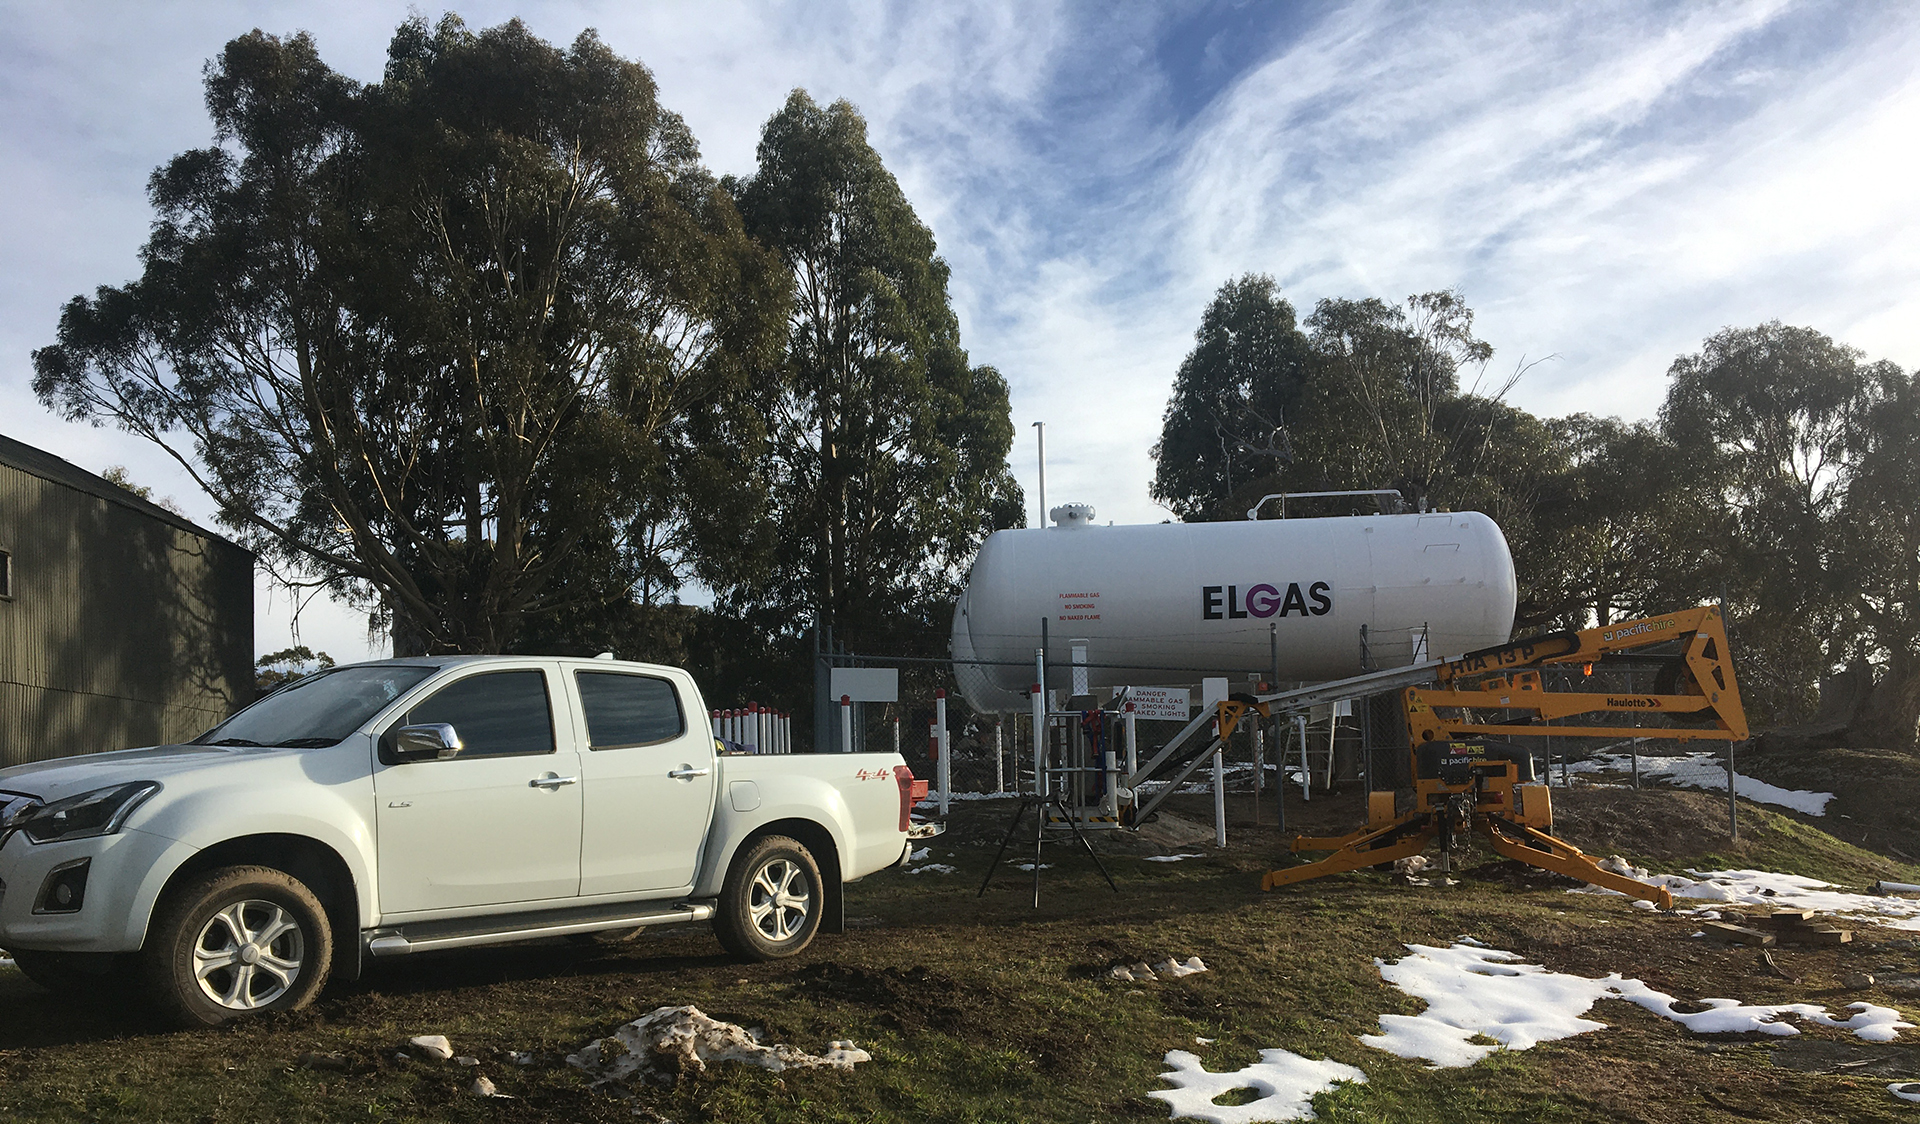 Maintenance works at Mount Buffalo Chalet - Elgas refurbishment of large bullets to provide gas heating for the building, 6 May 2020.